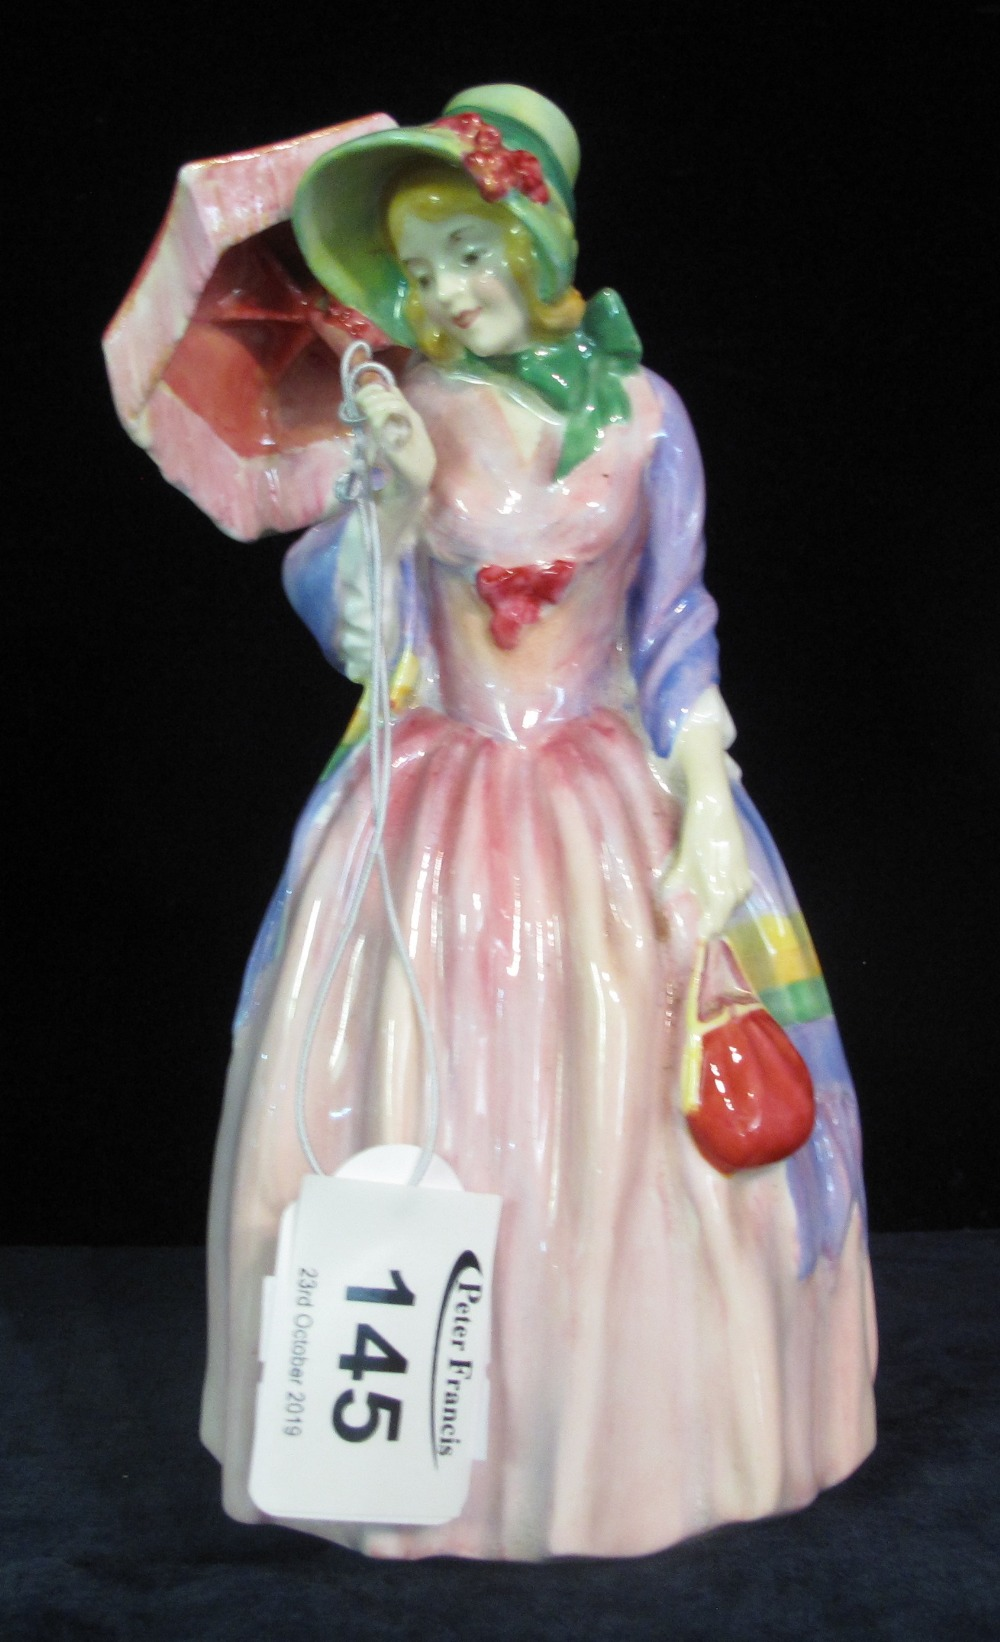 Lot 145 - Royal Doulton bone china figurine 'Miss Demure' HN1402 potted by Doulton & Co. (B.P. 24% incl.